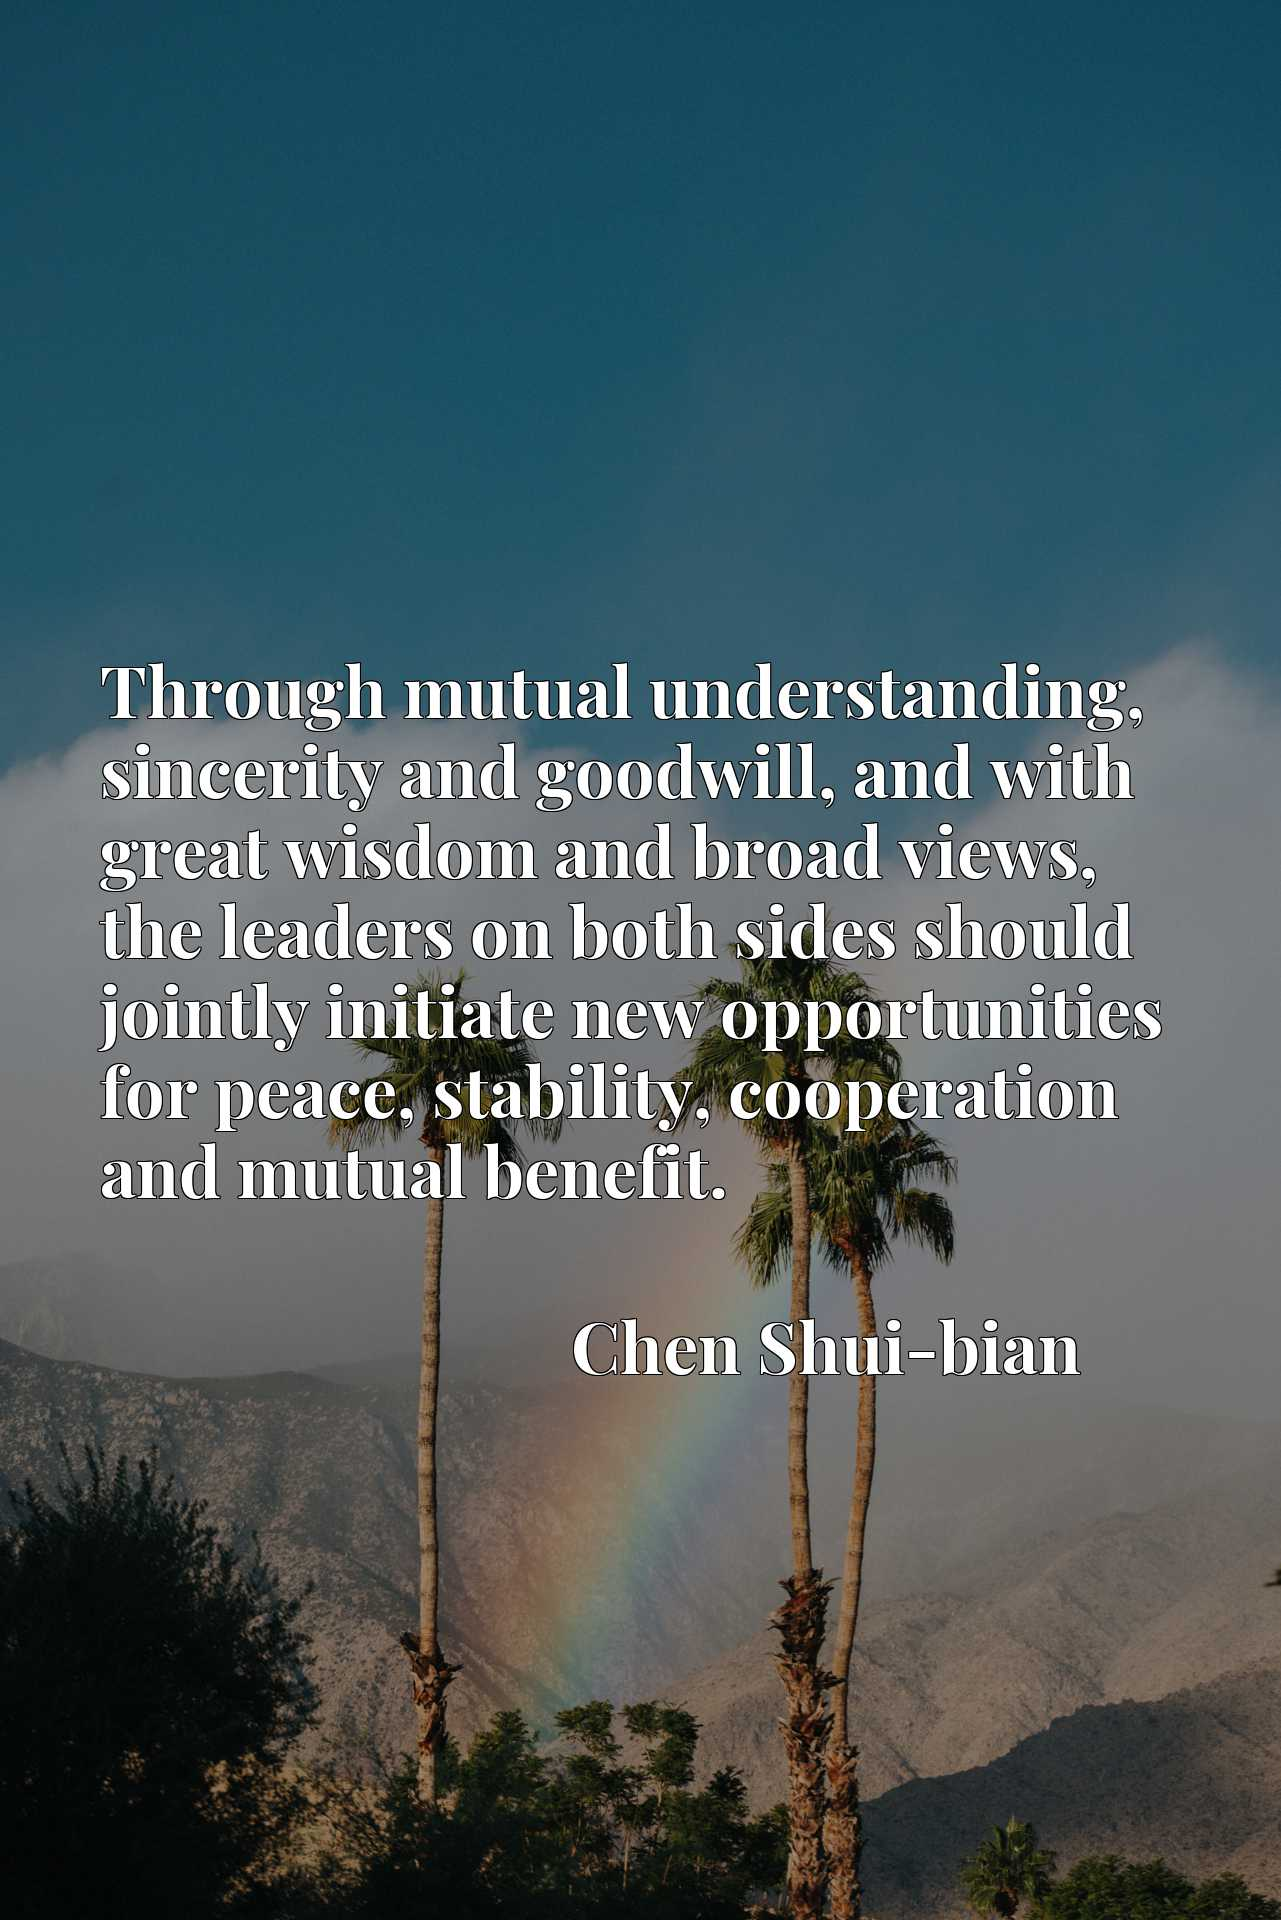 Through mutual understanding, sincerity and goodwill, and with great wisdom and broad views, the leaders on both sides should jointly initiate new opportunities for peace, stability, cooperation and mutual benefit.